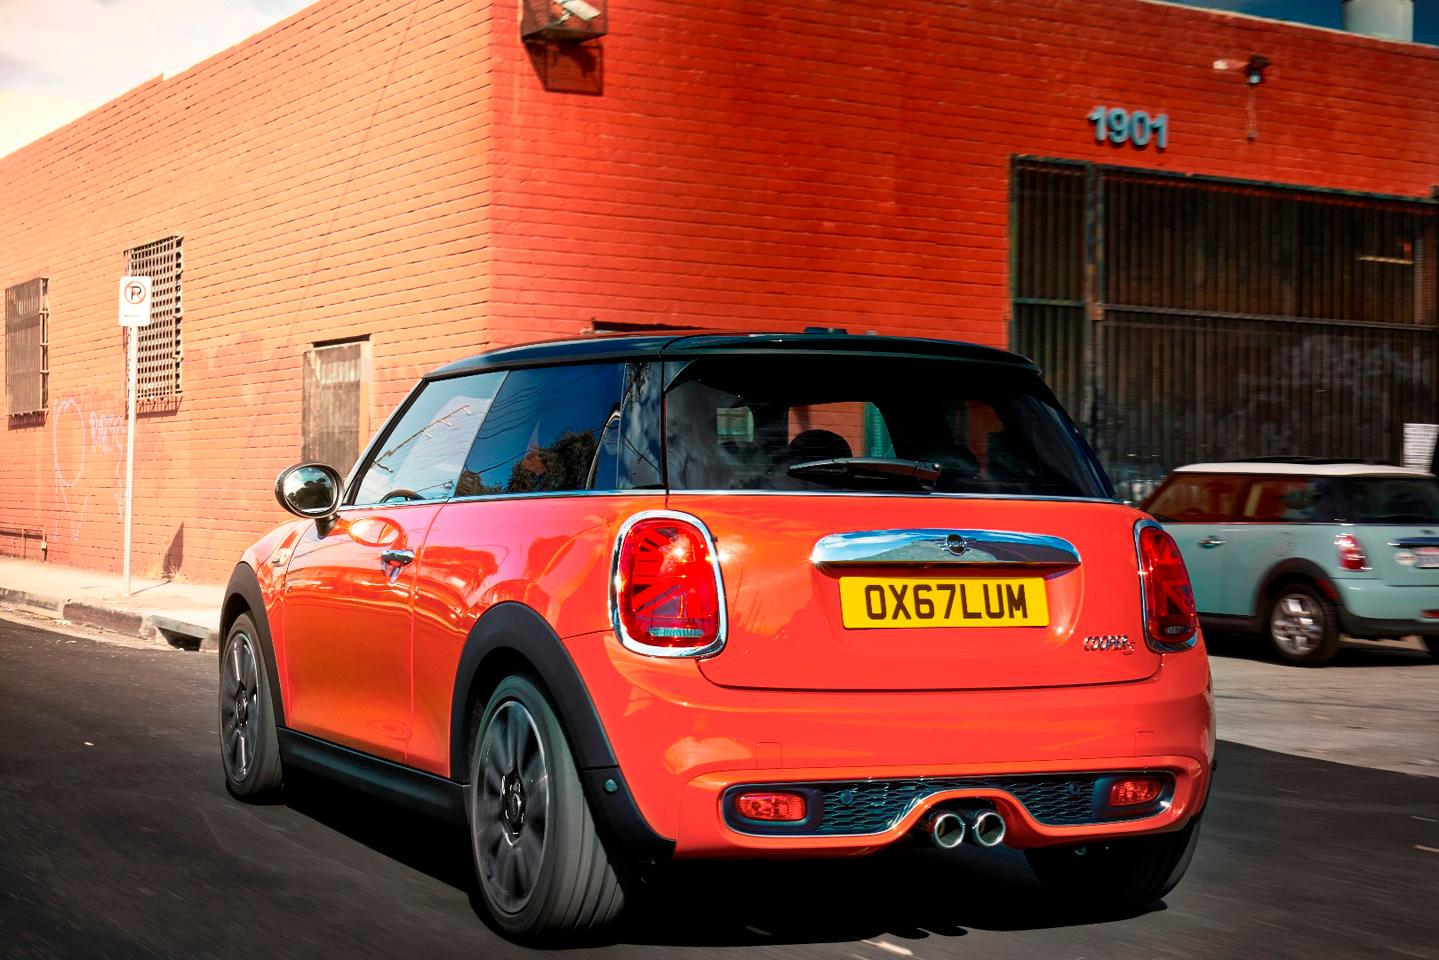 Mini has incorporated the union jack into the taillamp lighting structure to accentuate the car's heritage